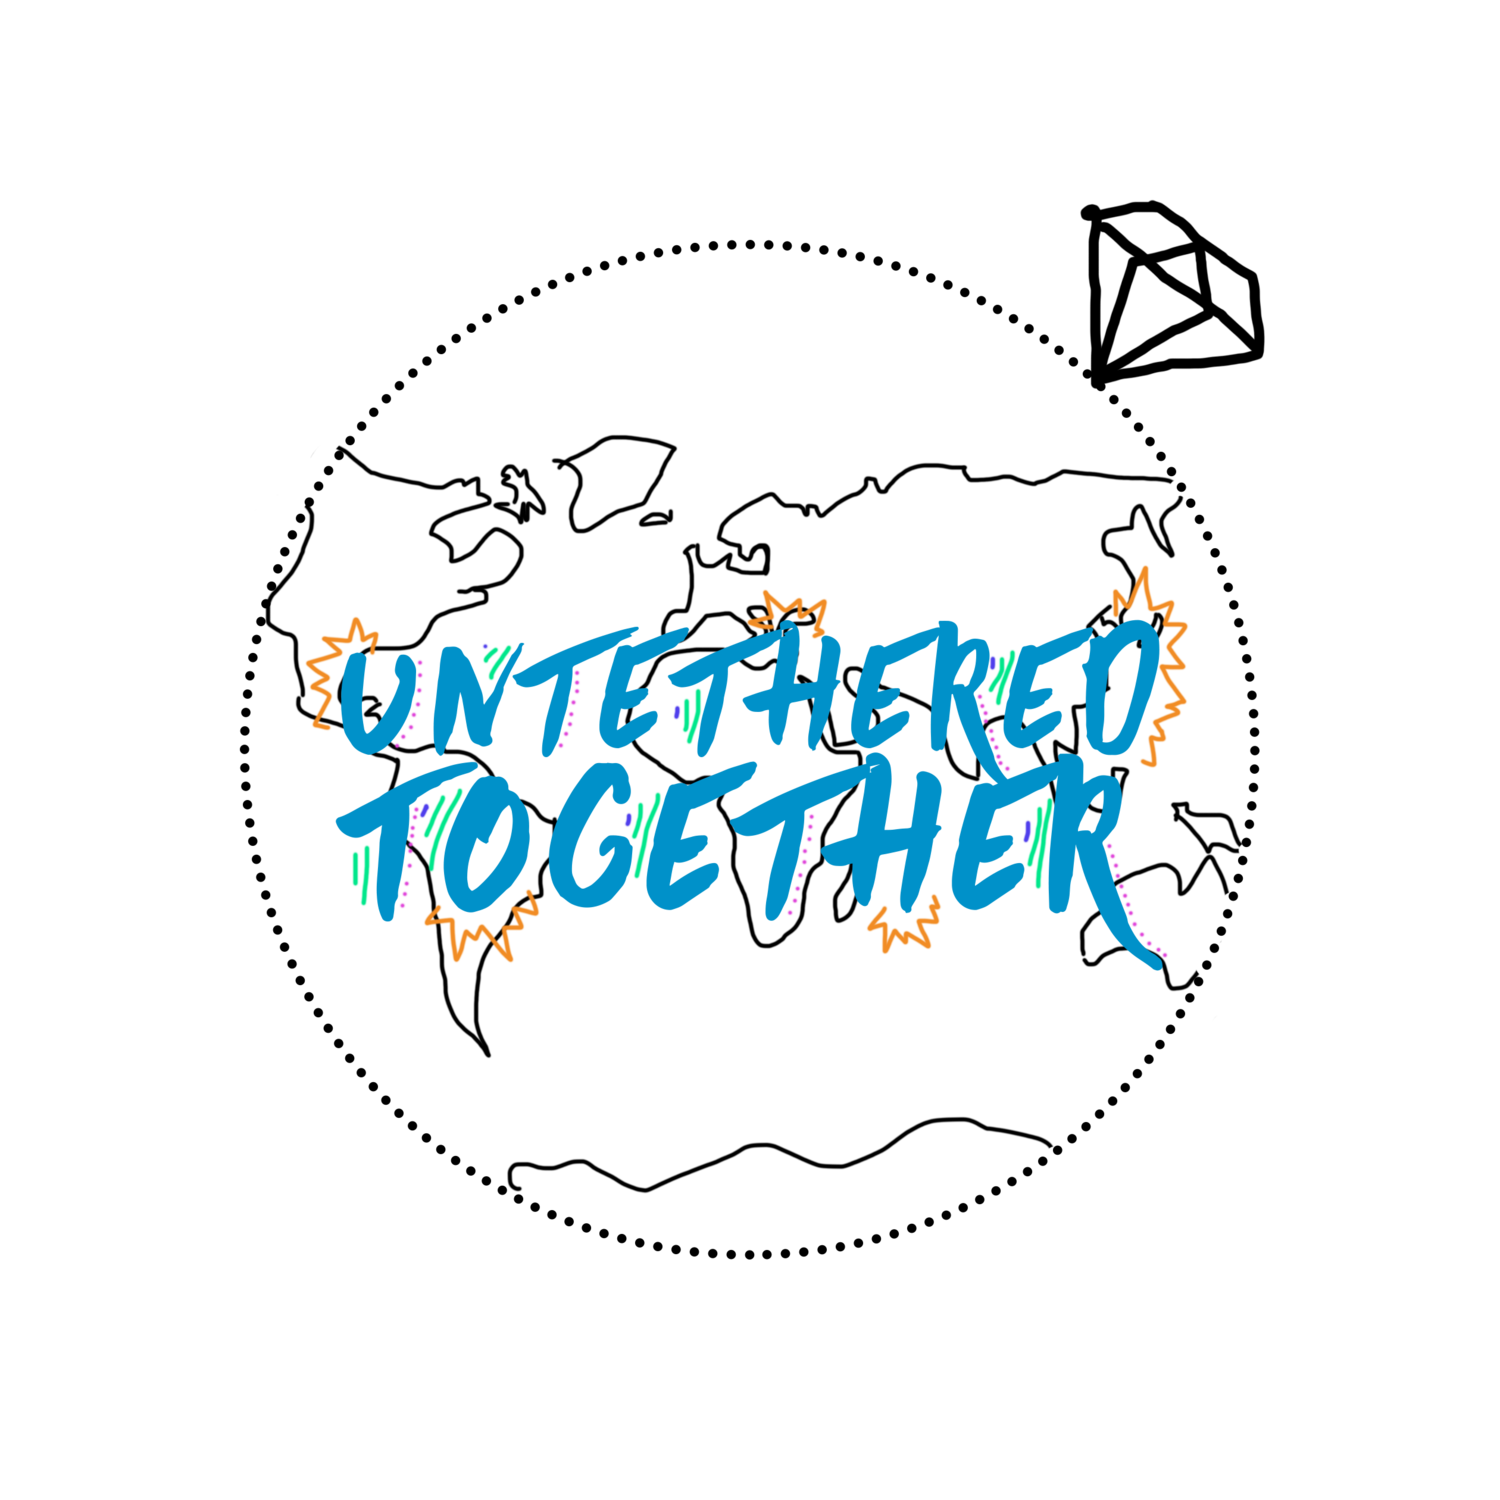 Untethered Together